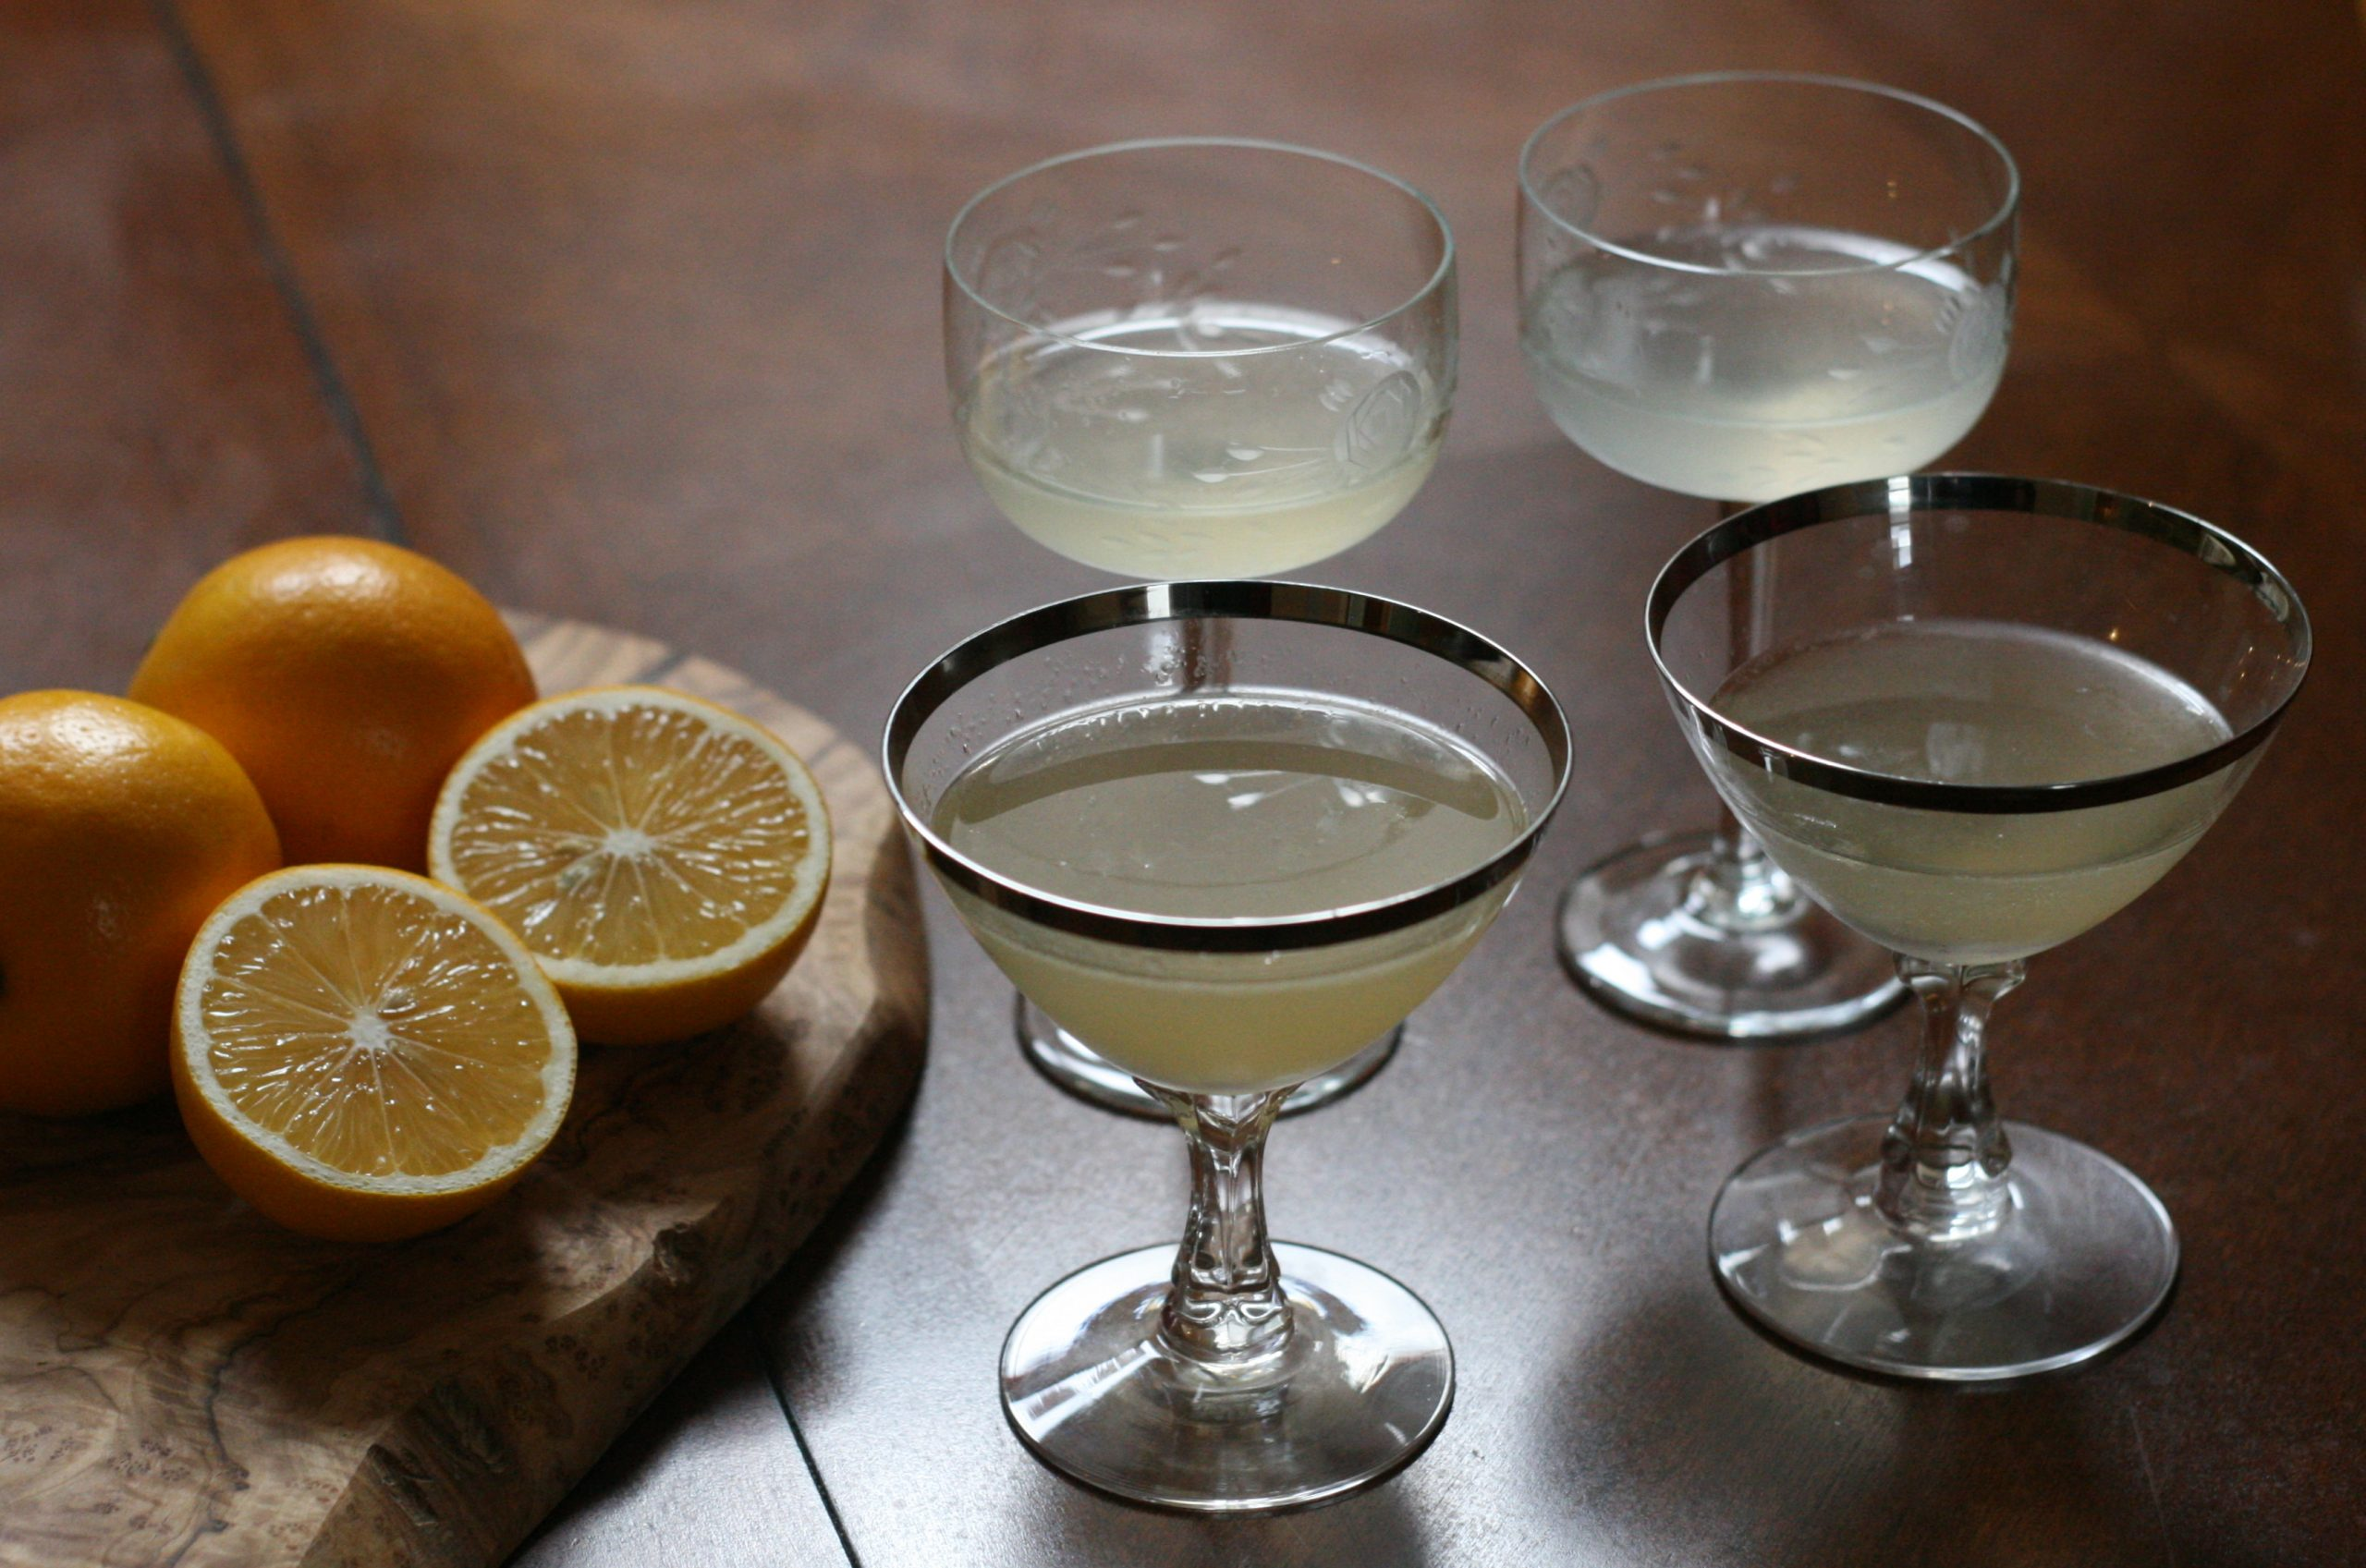 The pisco sours (front) and gin sours